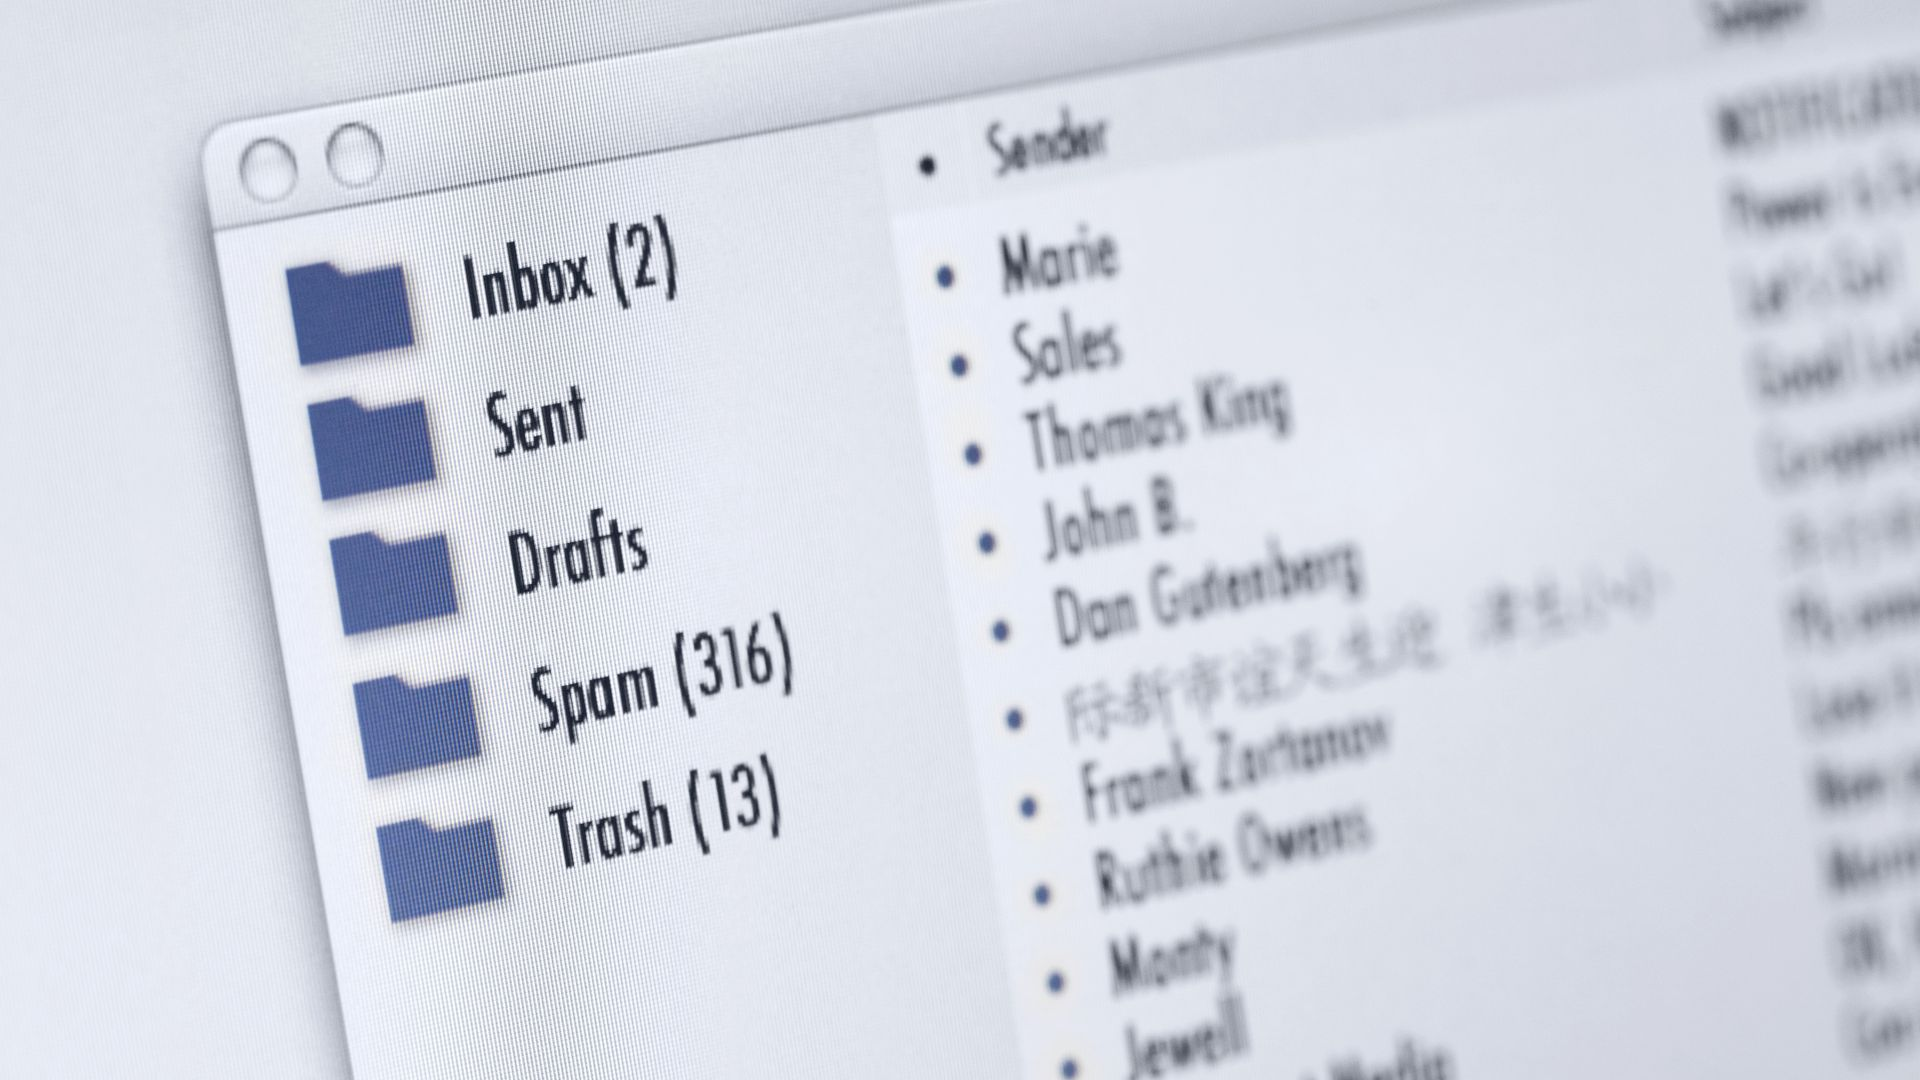 Image of email inbox on a computer screen